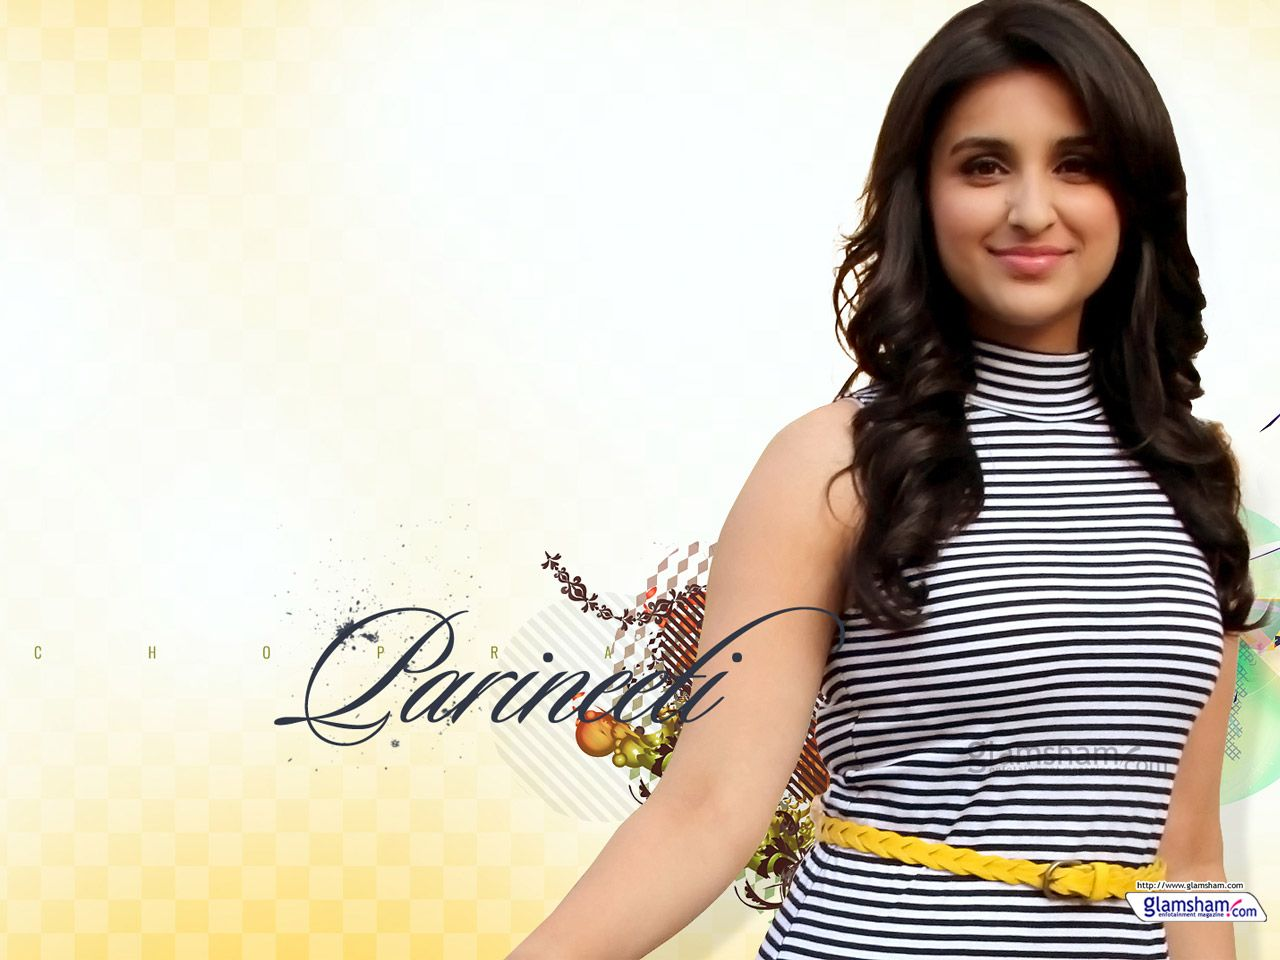 Best and hot parineeti chopra wallpapers 1024 768 - Parineeti chopra wallpapers for iphone ...